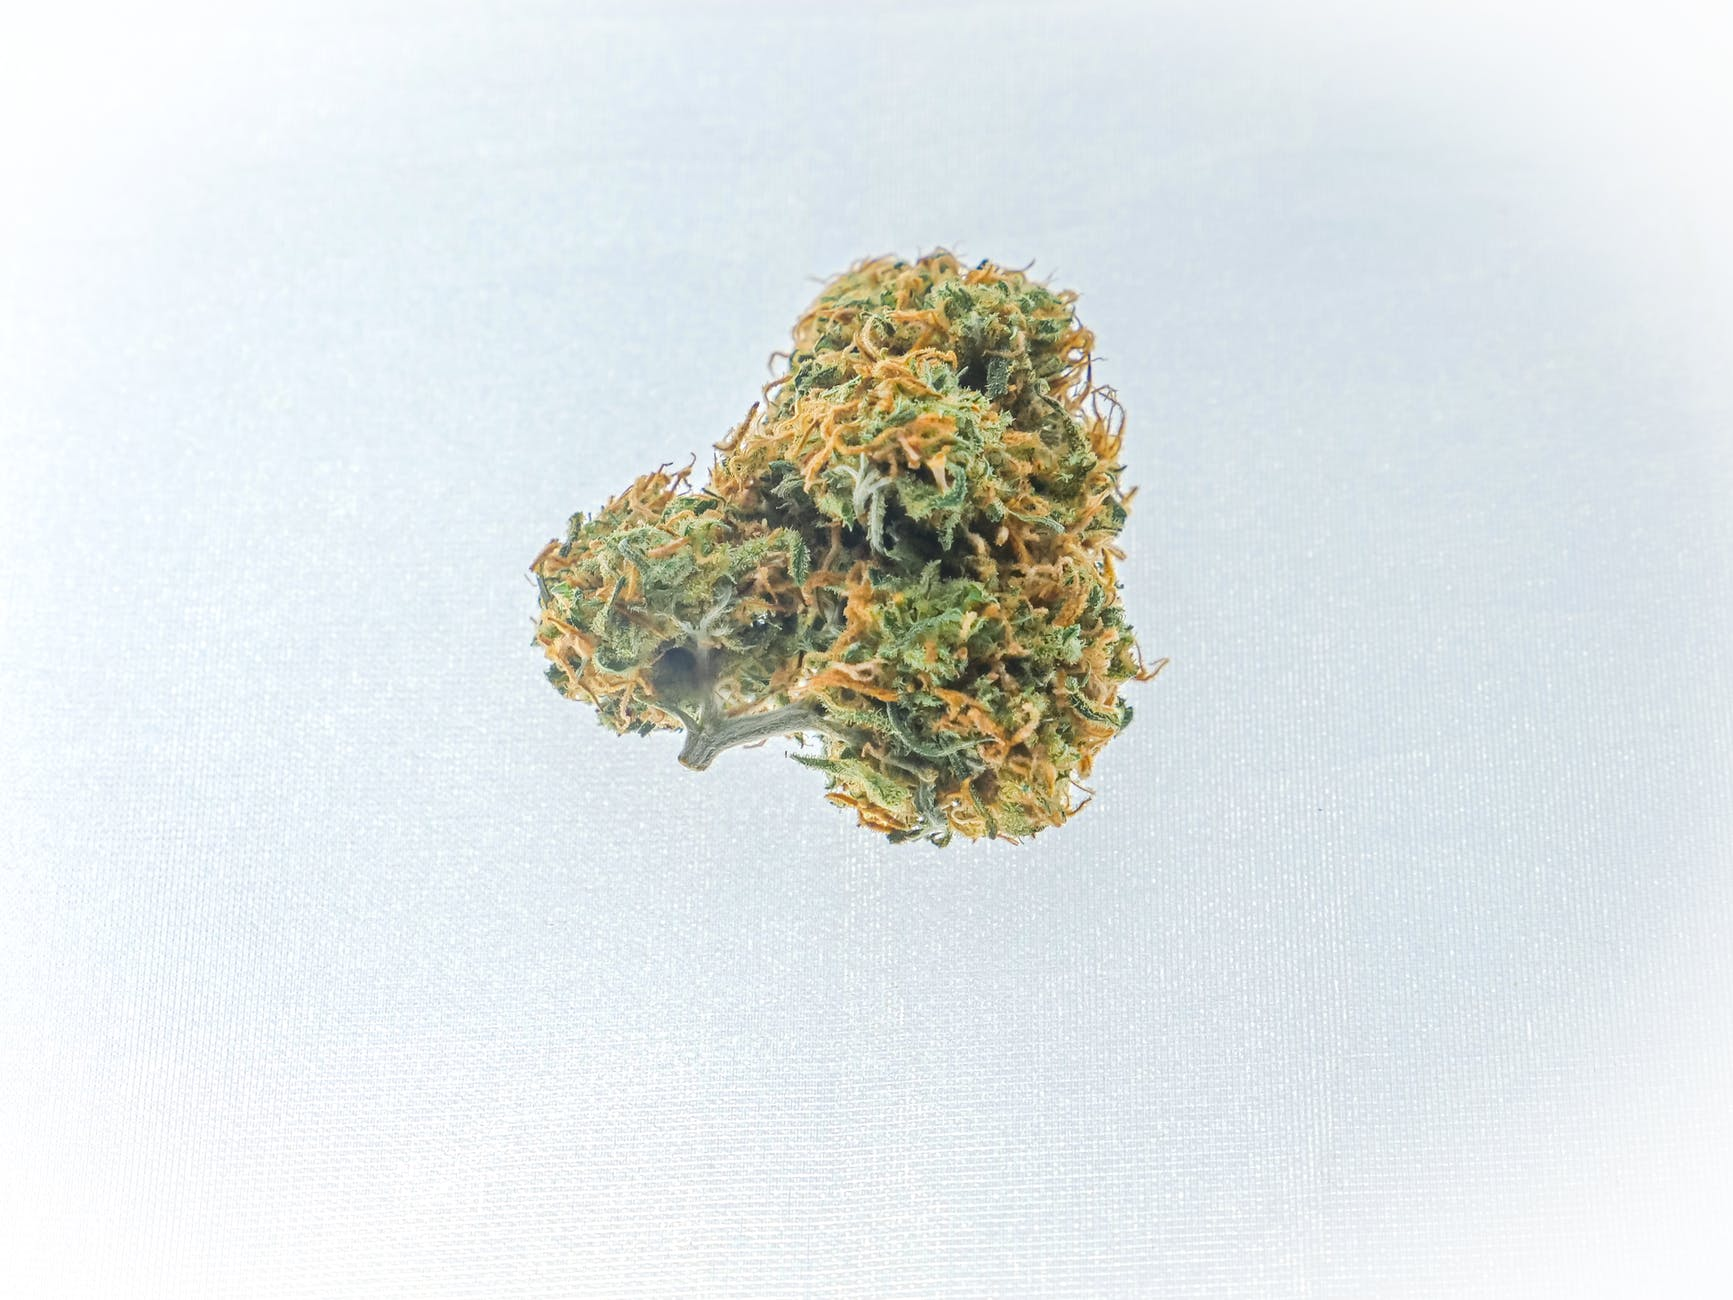 photo of skunk weed on white background